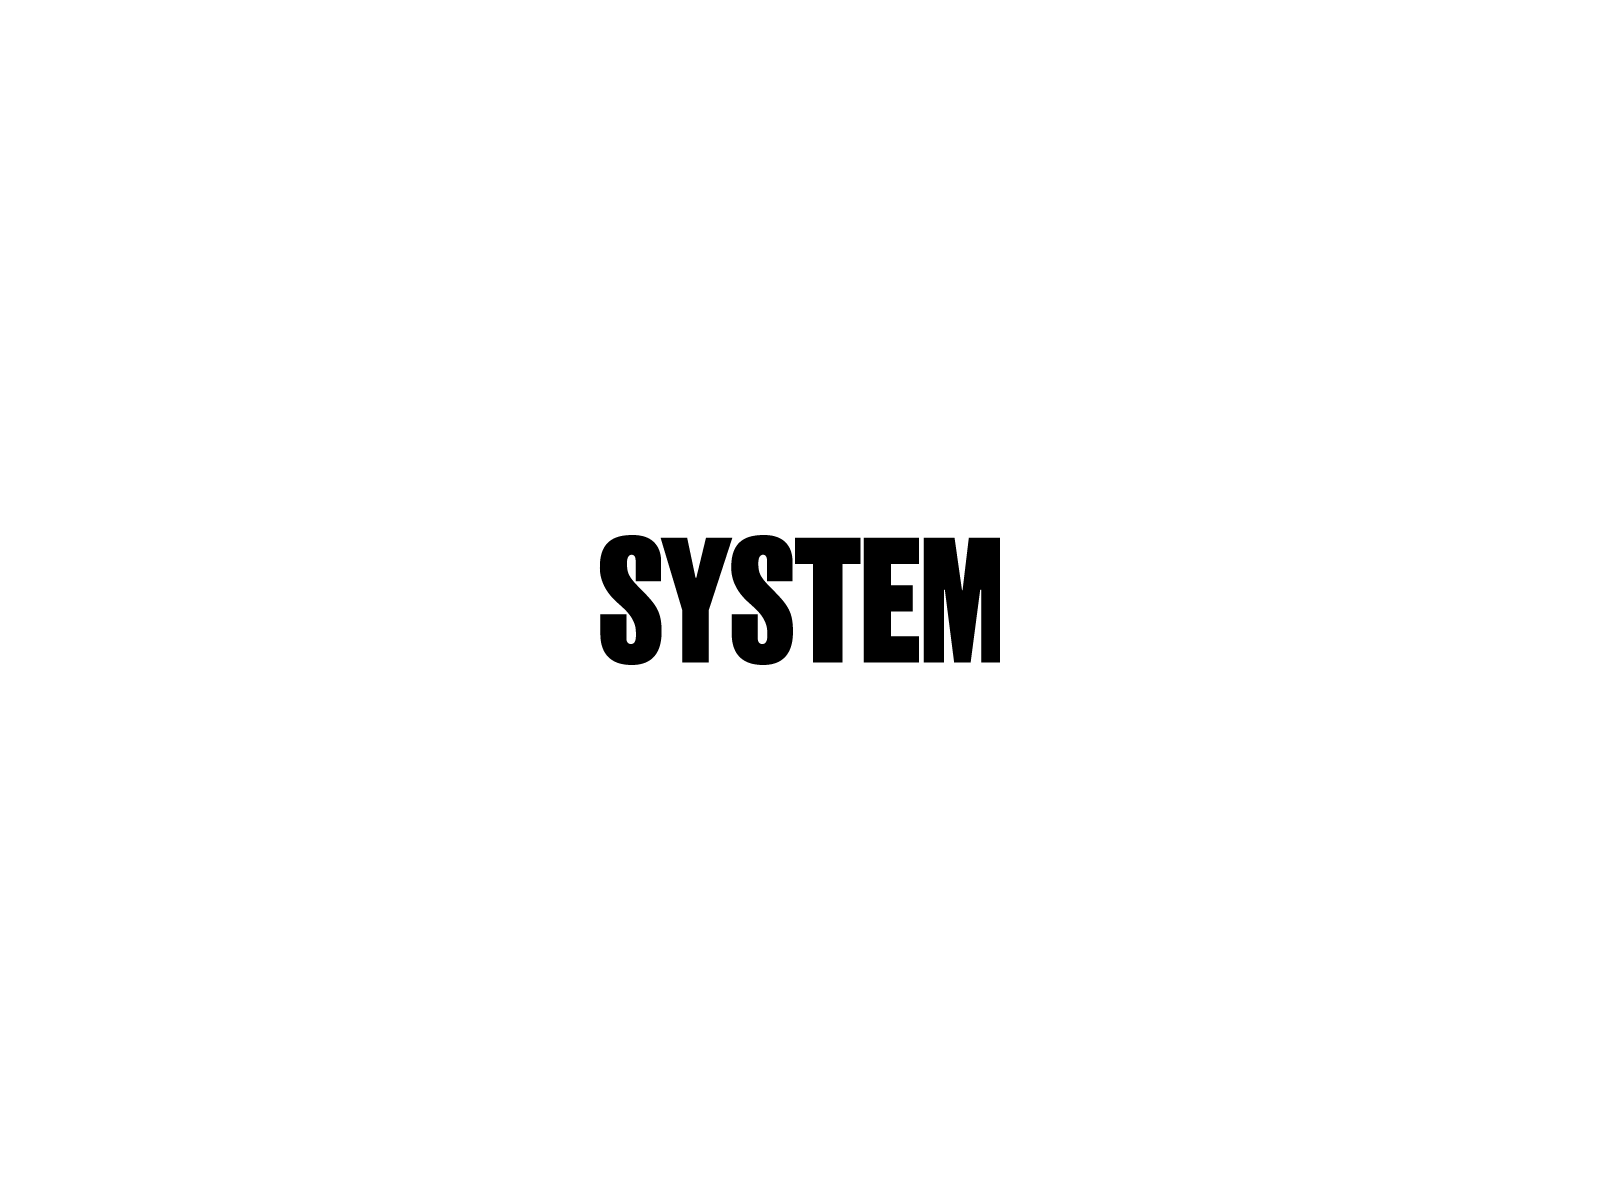 image of System